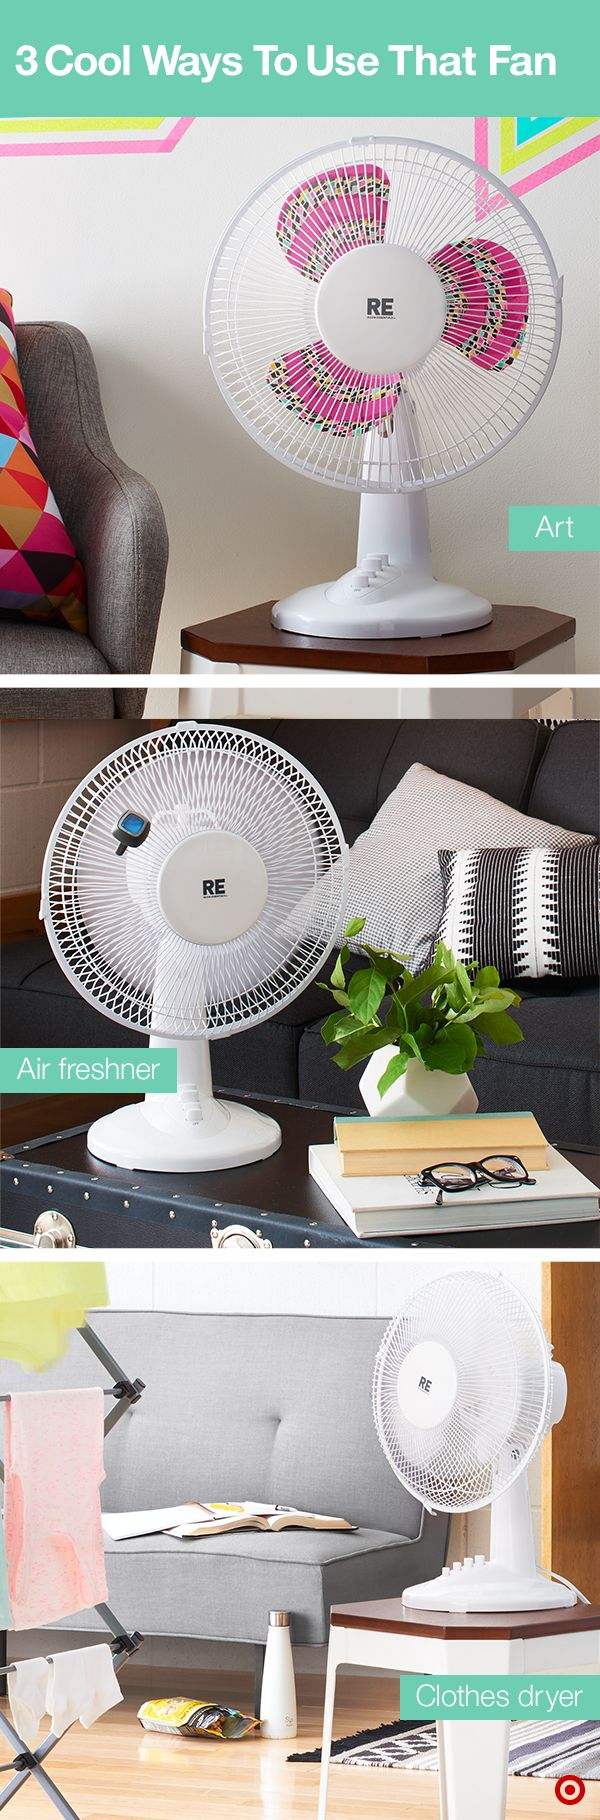 Fans Are A College Dorm Room S Best Friend And Not Just